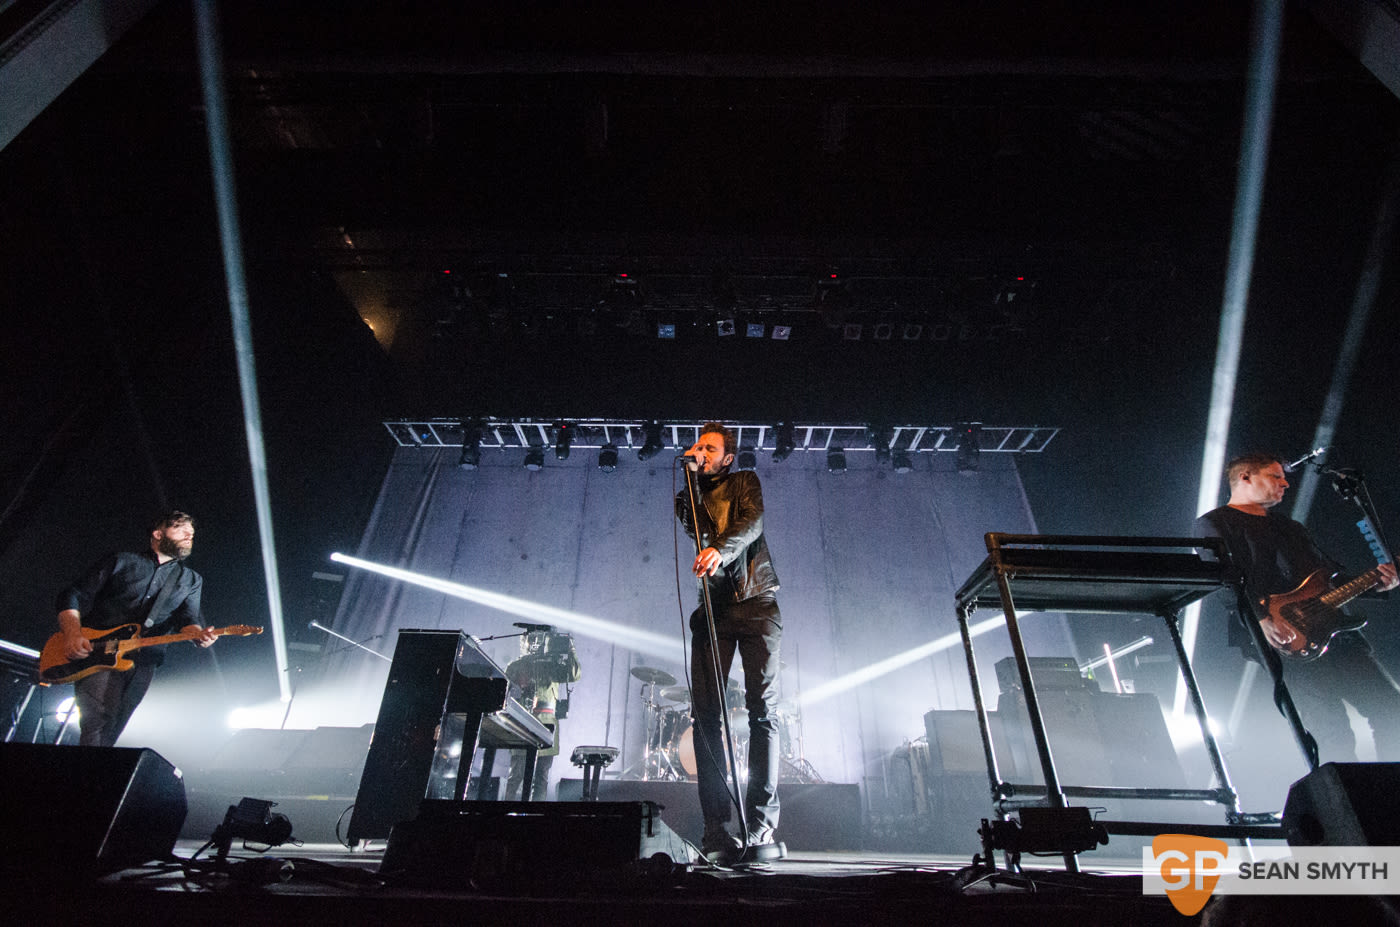 editors-at-the-olympia-theatre-by-sean-smyth-10-10-15-24-of-28_22090440605_o